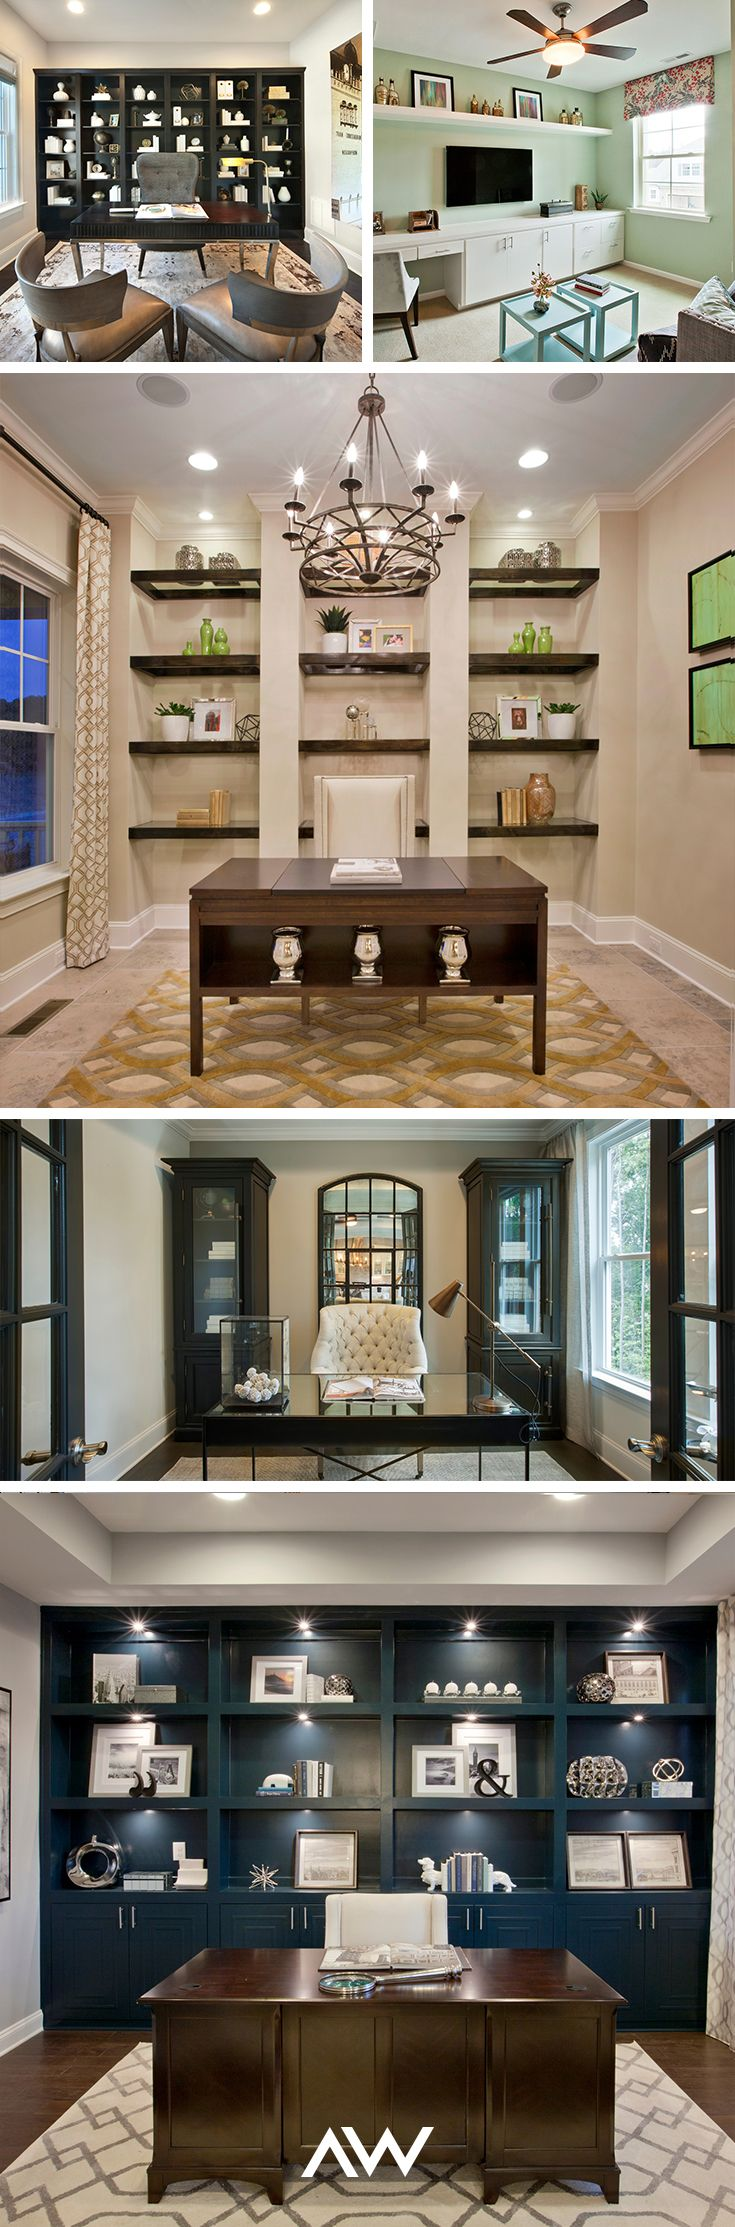 Home interior design raleigh - A Home Office Or Study Space Is A Great Addition To Any Home With The Right Interior Design And Decor You Can Create An Incredible Room In Your Home